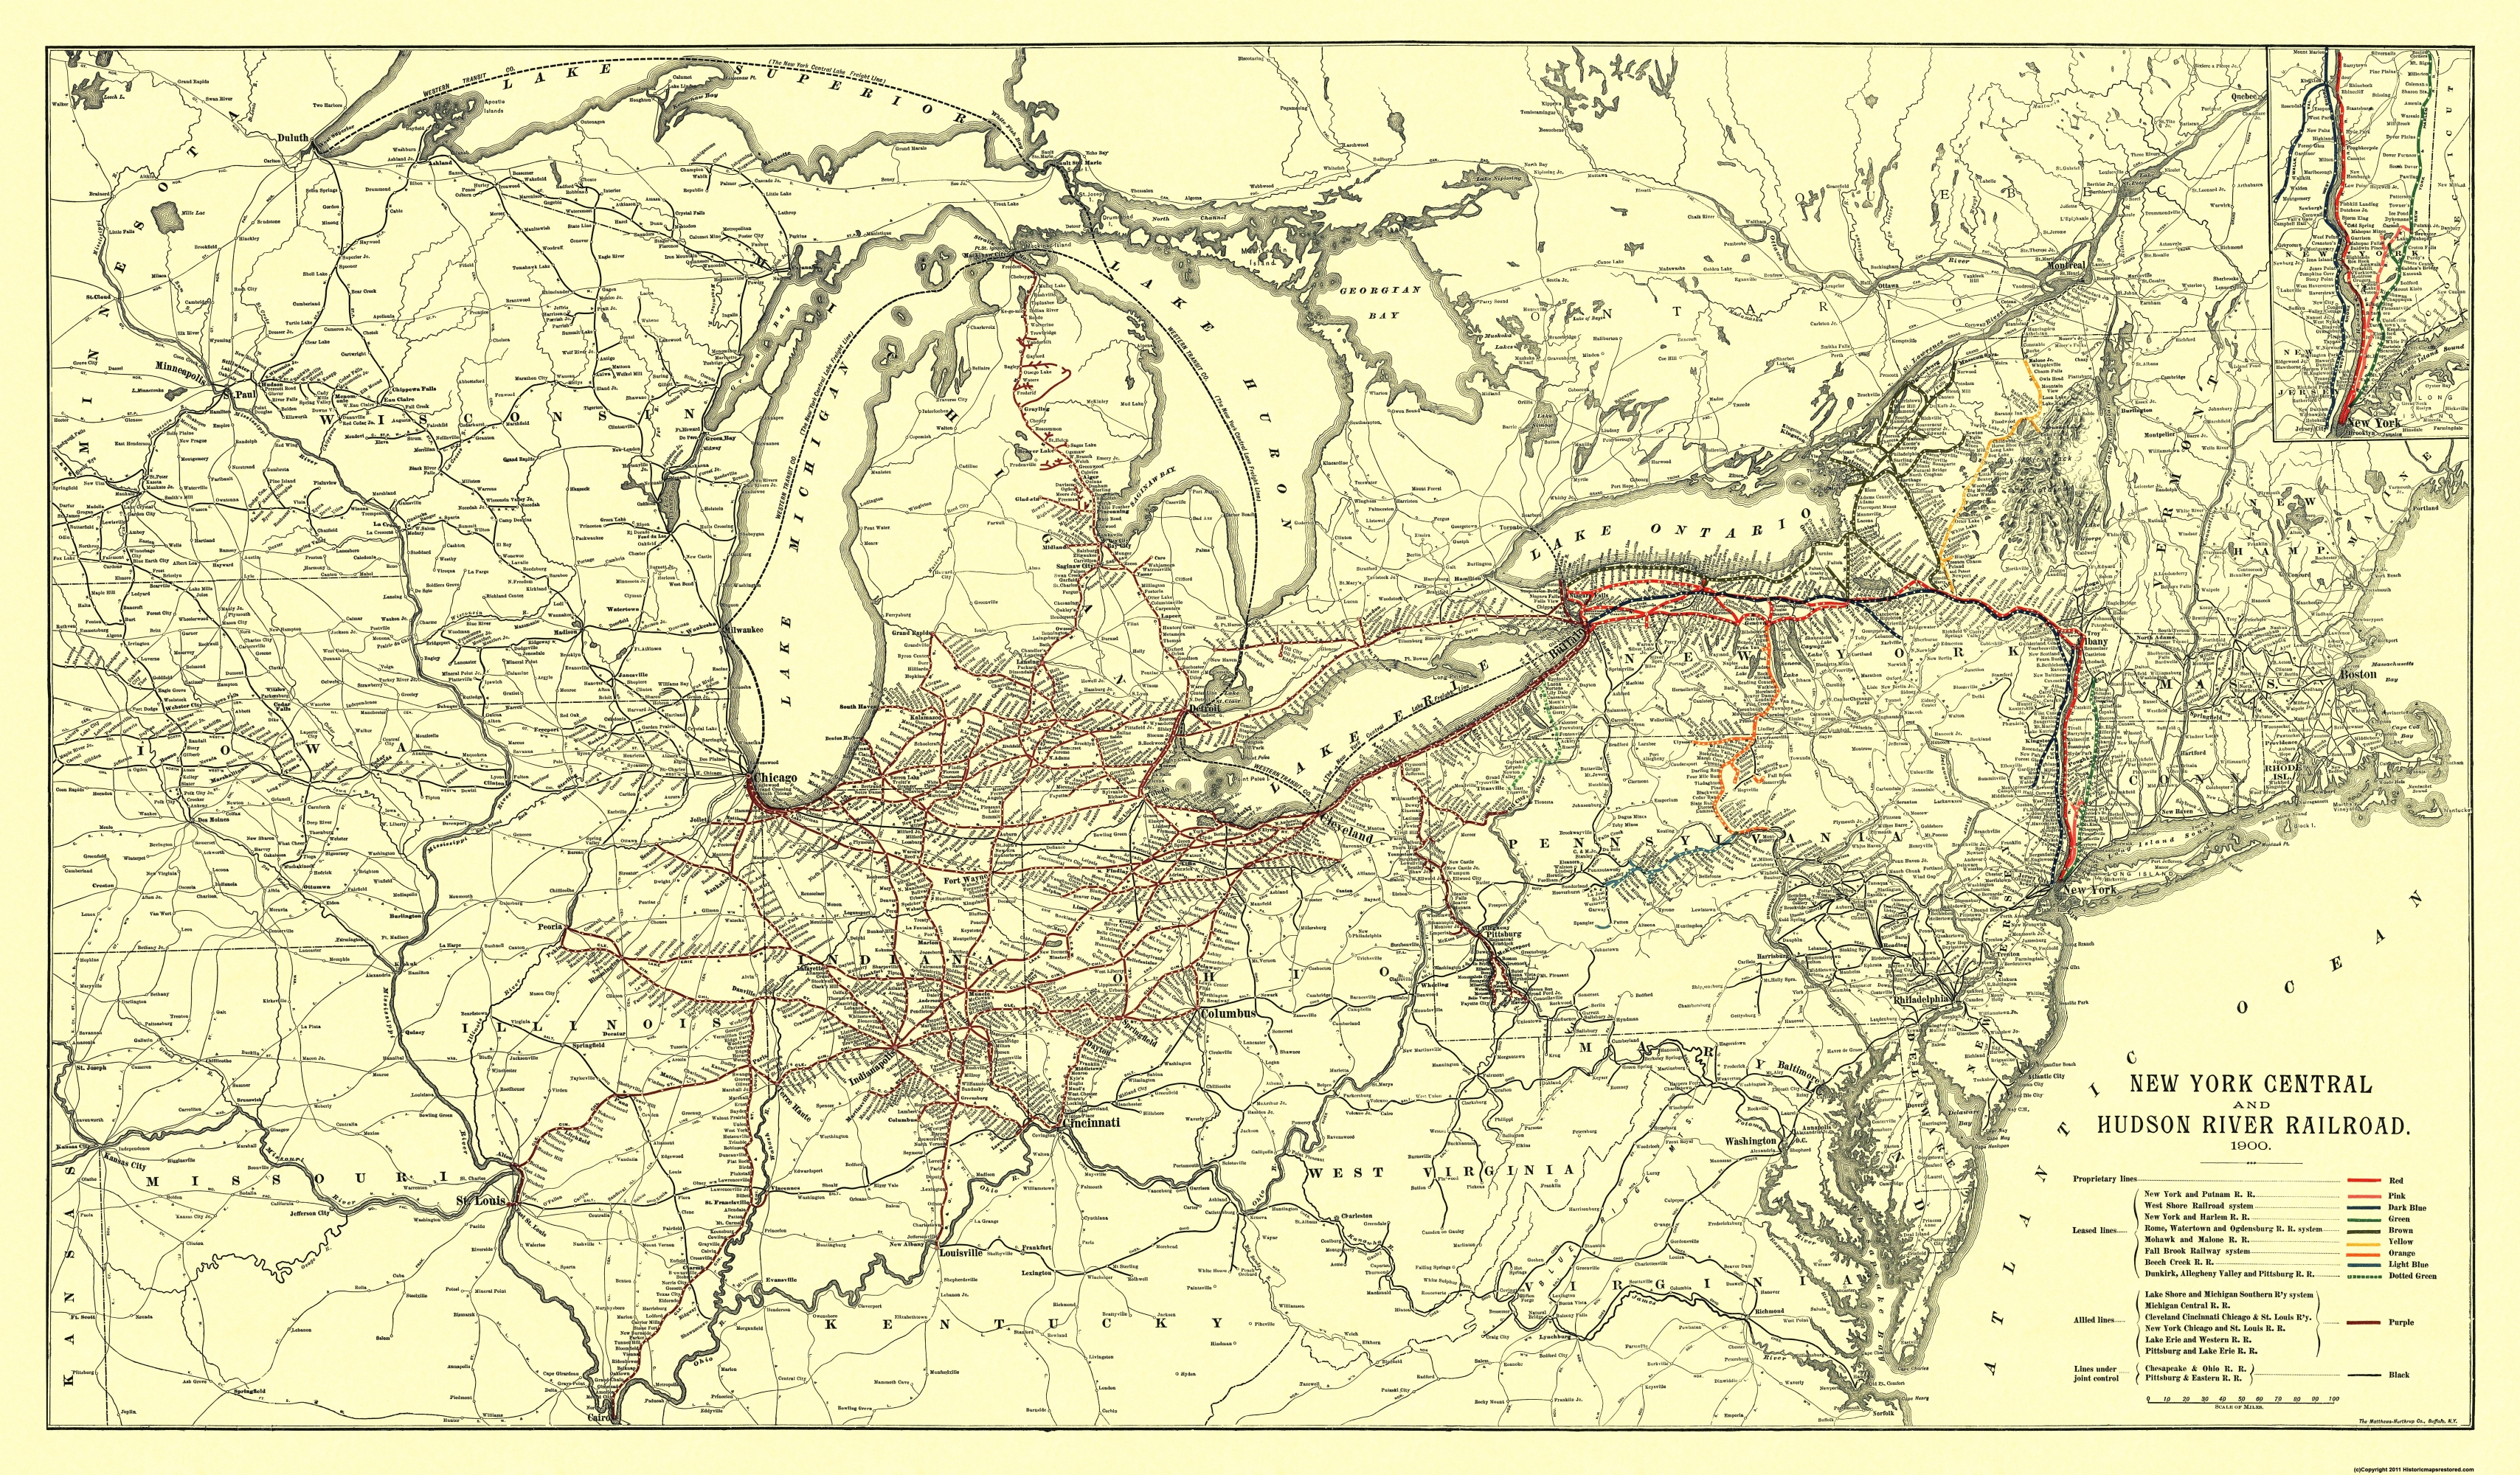 Old Railroad Map New York Central Hudson River 1900